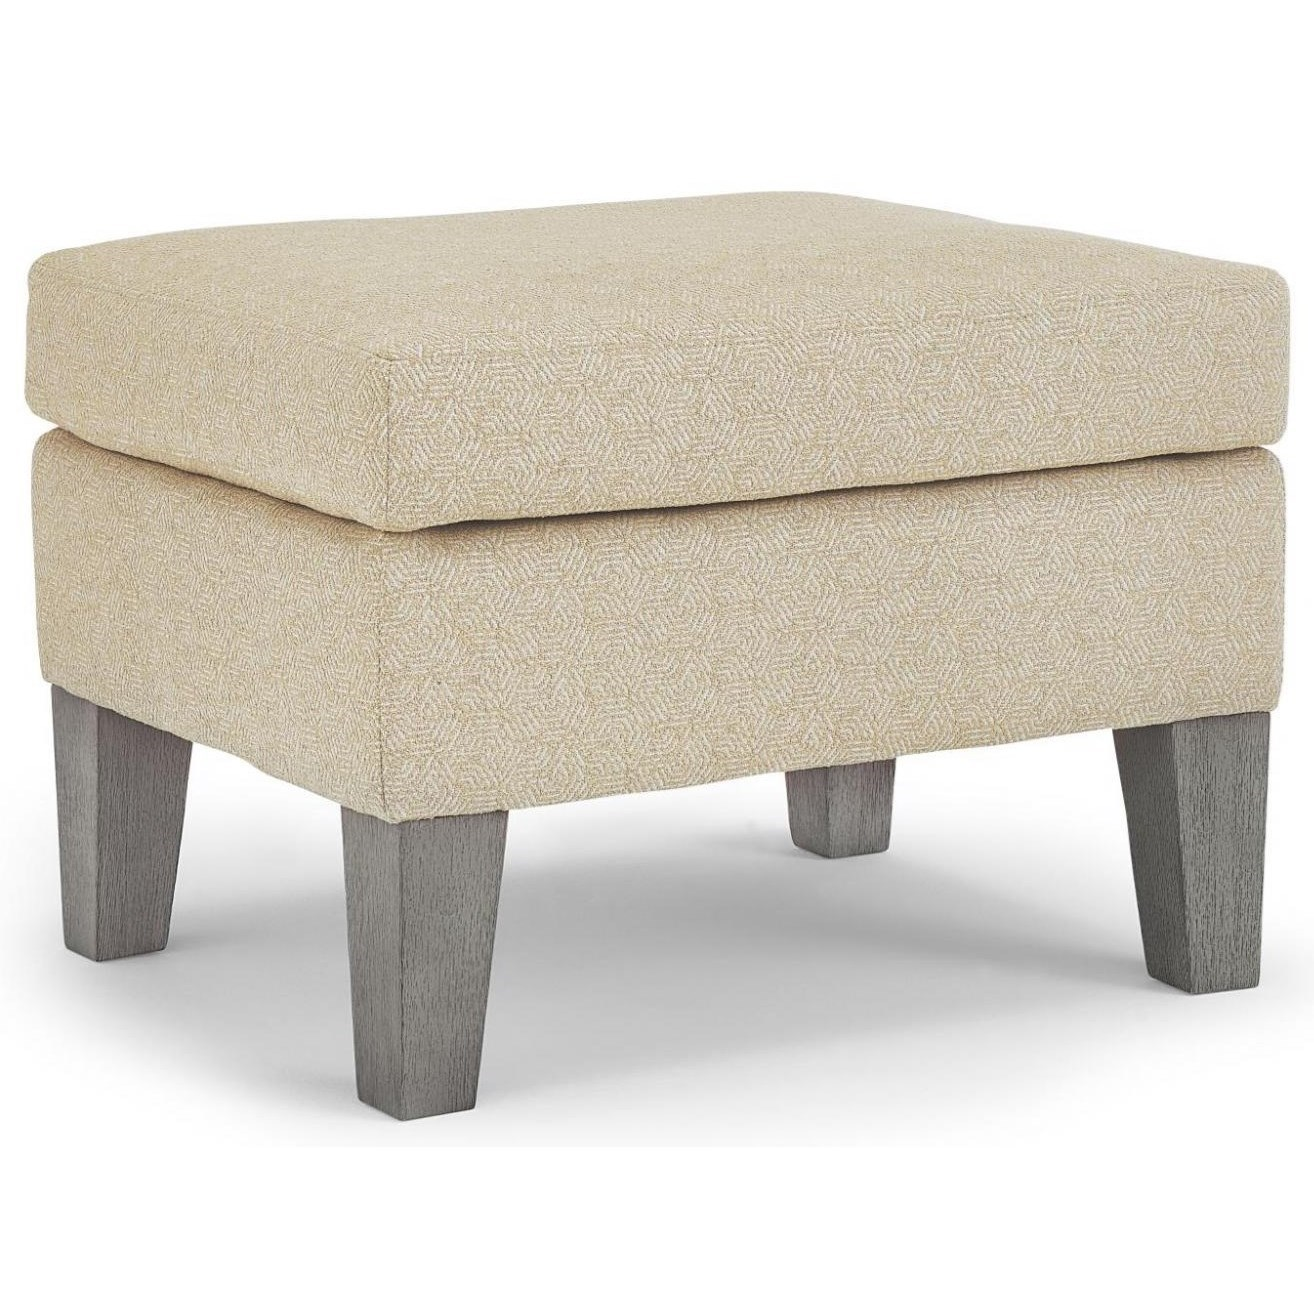 0008 Ottoman by Best Home Furnishings at Zak's Home